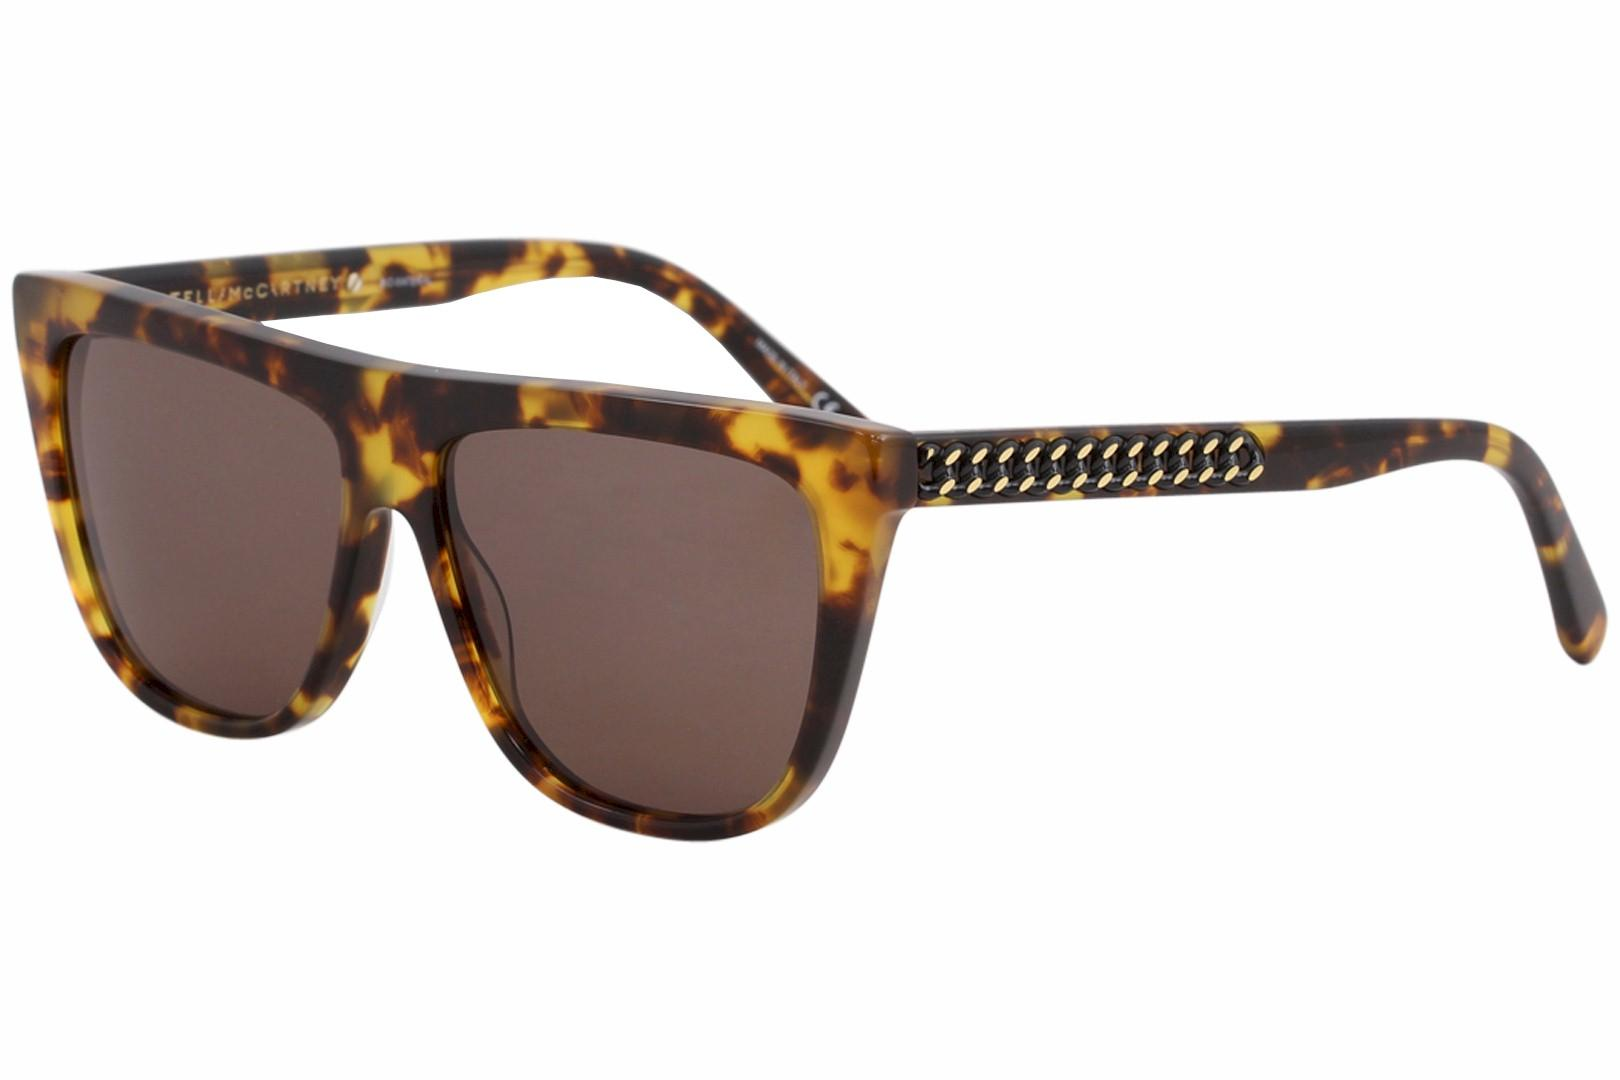 Image of Stella McCartney Falabella SC0149S SC/0149/S 003 Havana Square Sunglasses 56mm - Havana/Brown   003 - Lens 56 Bridge 14 Temple 145mm